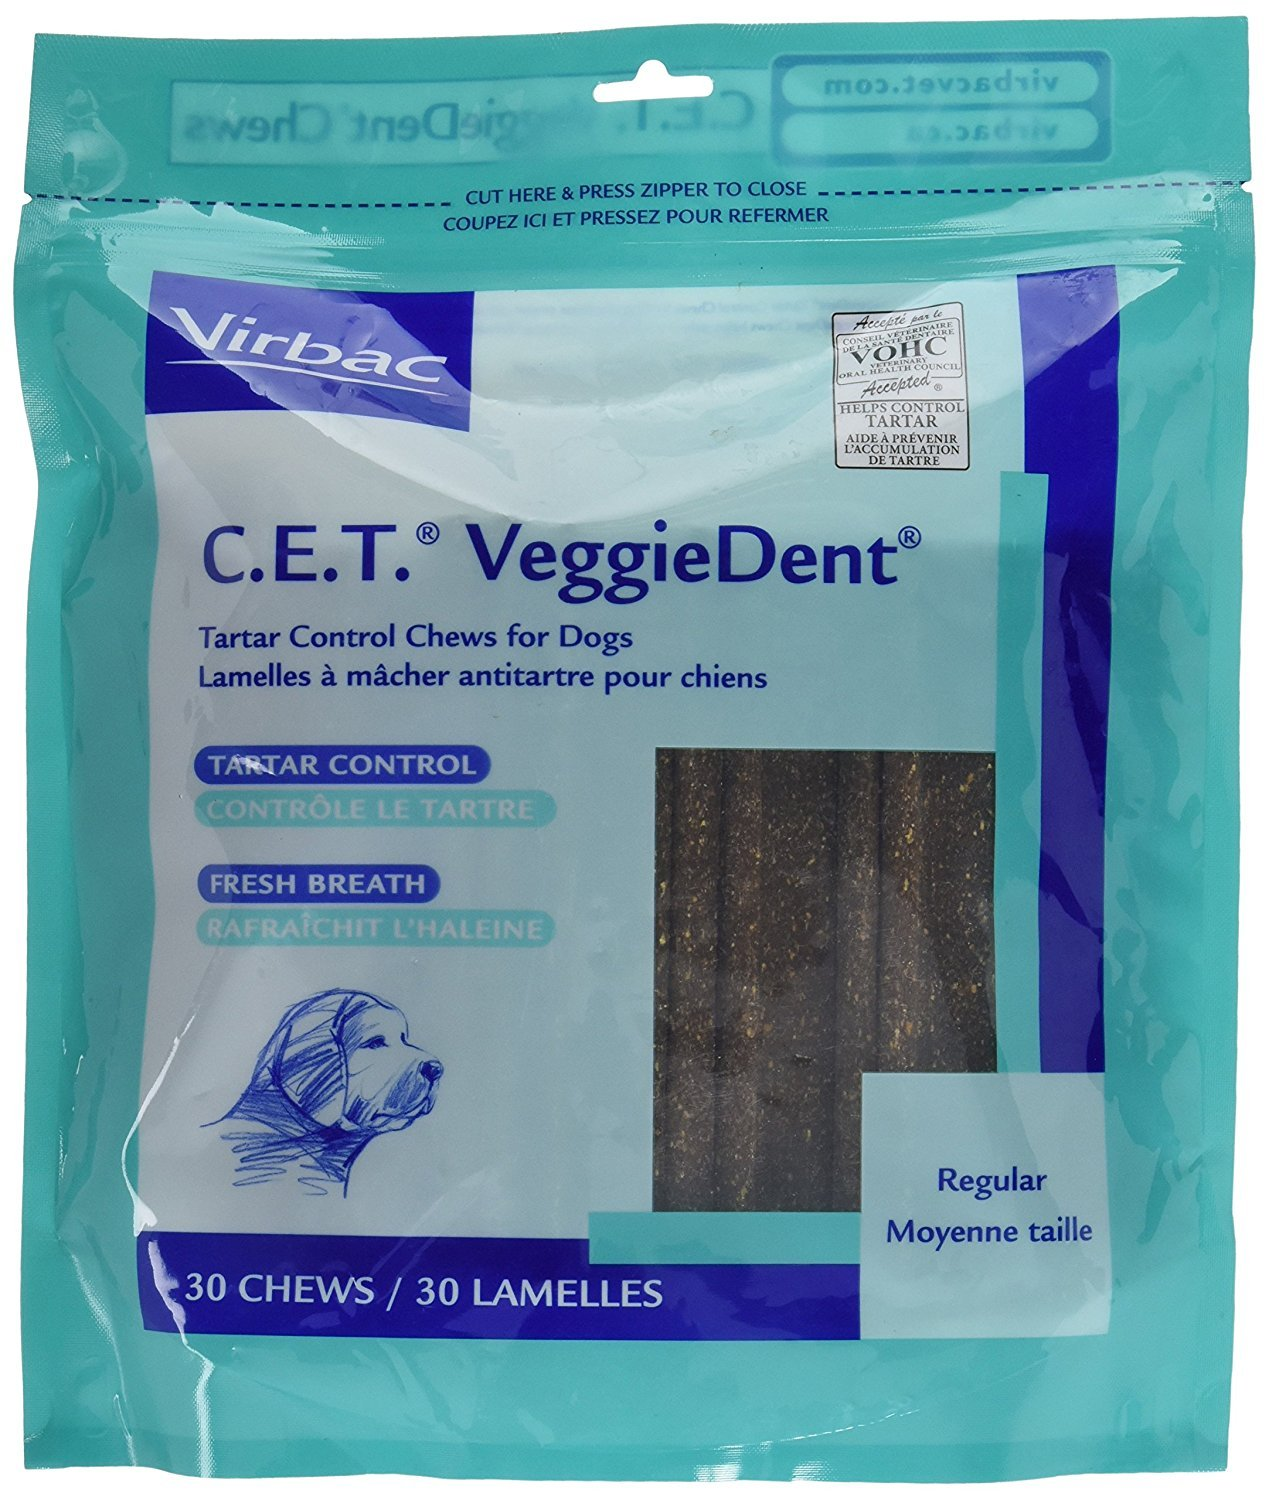 C.E.T. VeggieDent Chews, Regular,30 Chews (Pack of 2, 60 total) by C.E.T. VeggieDent Chews for Dogs, Regular, 30 Count